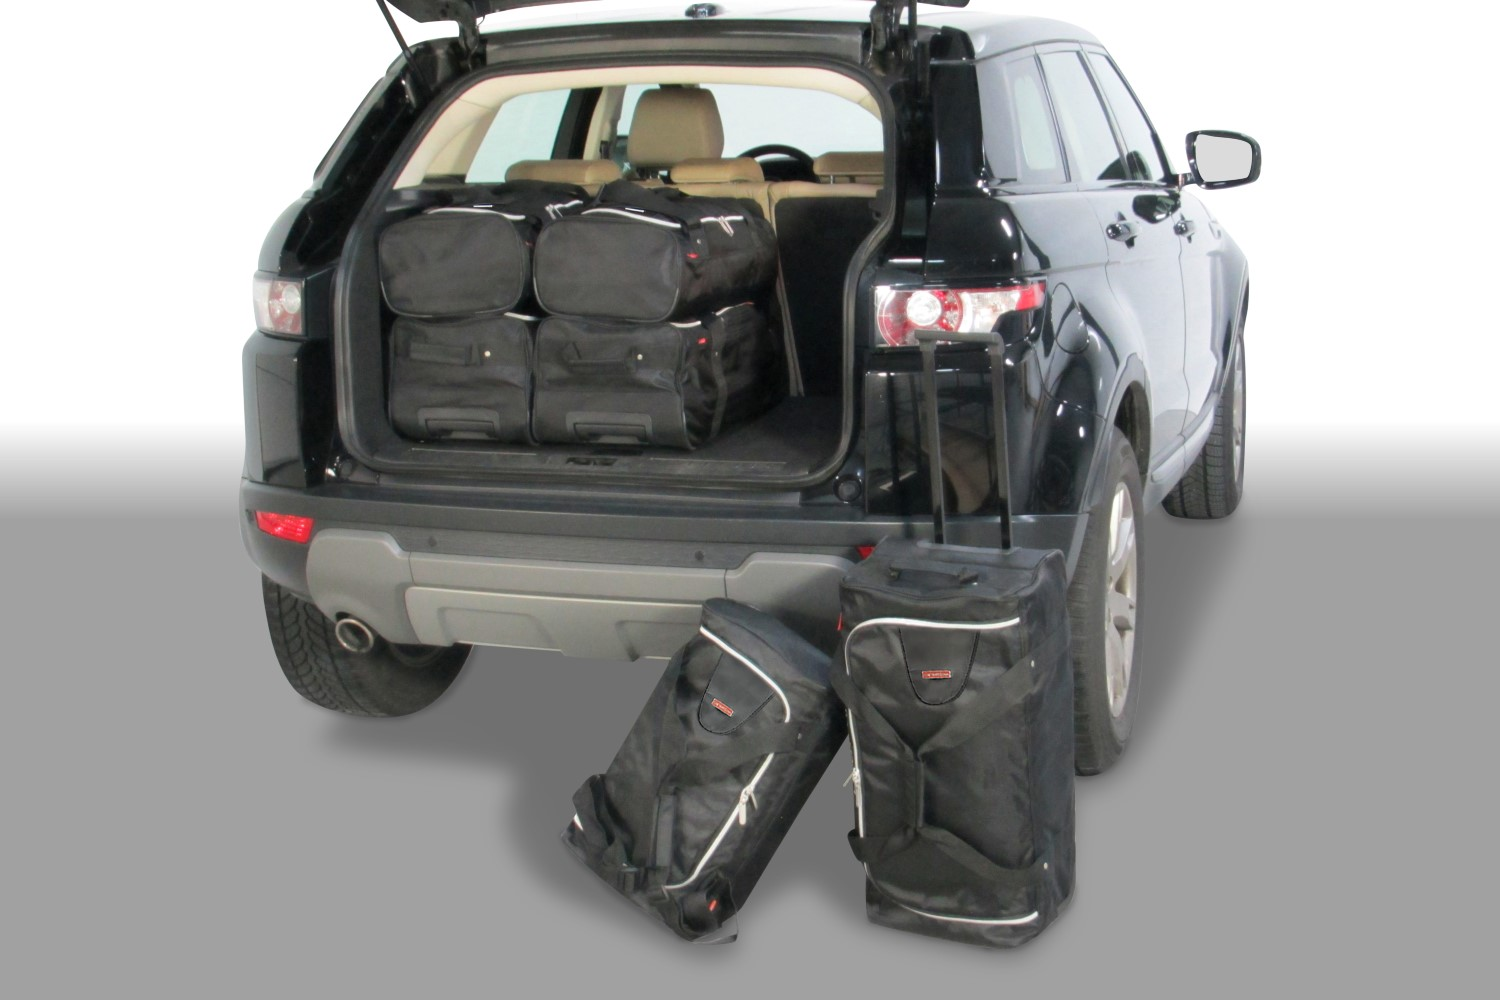 Land Rover Range Rover Evoque (L538) 2011- Car-Bags.com travel bag set (1)